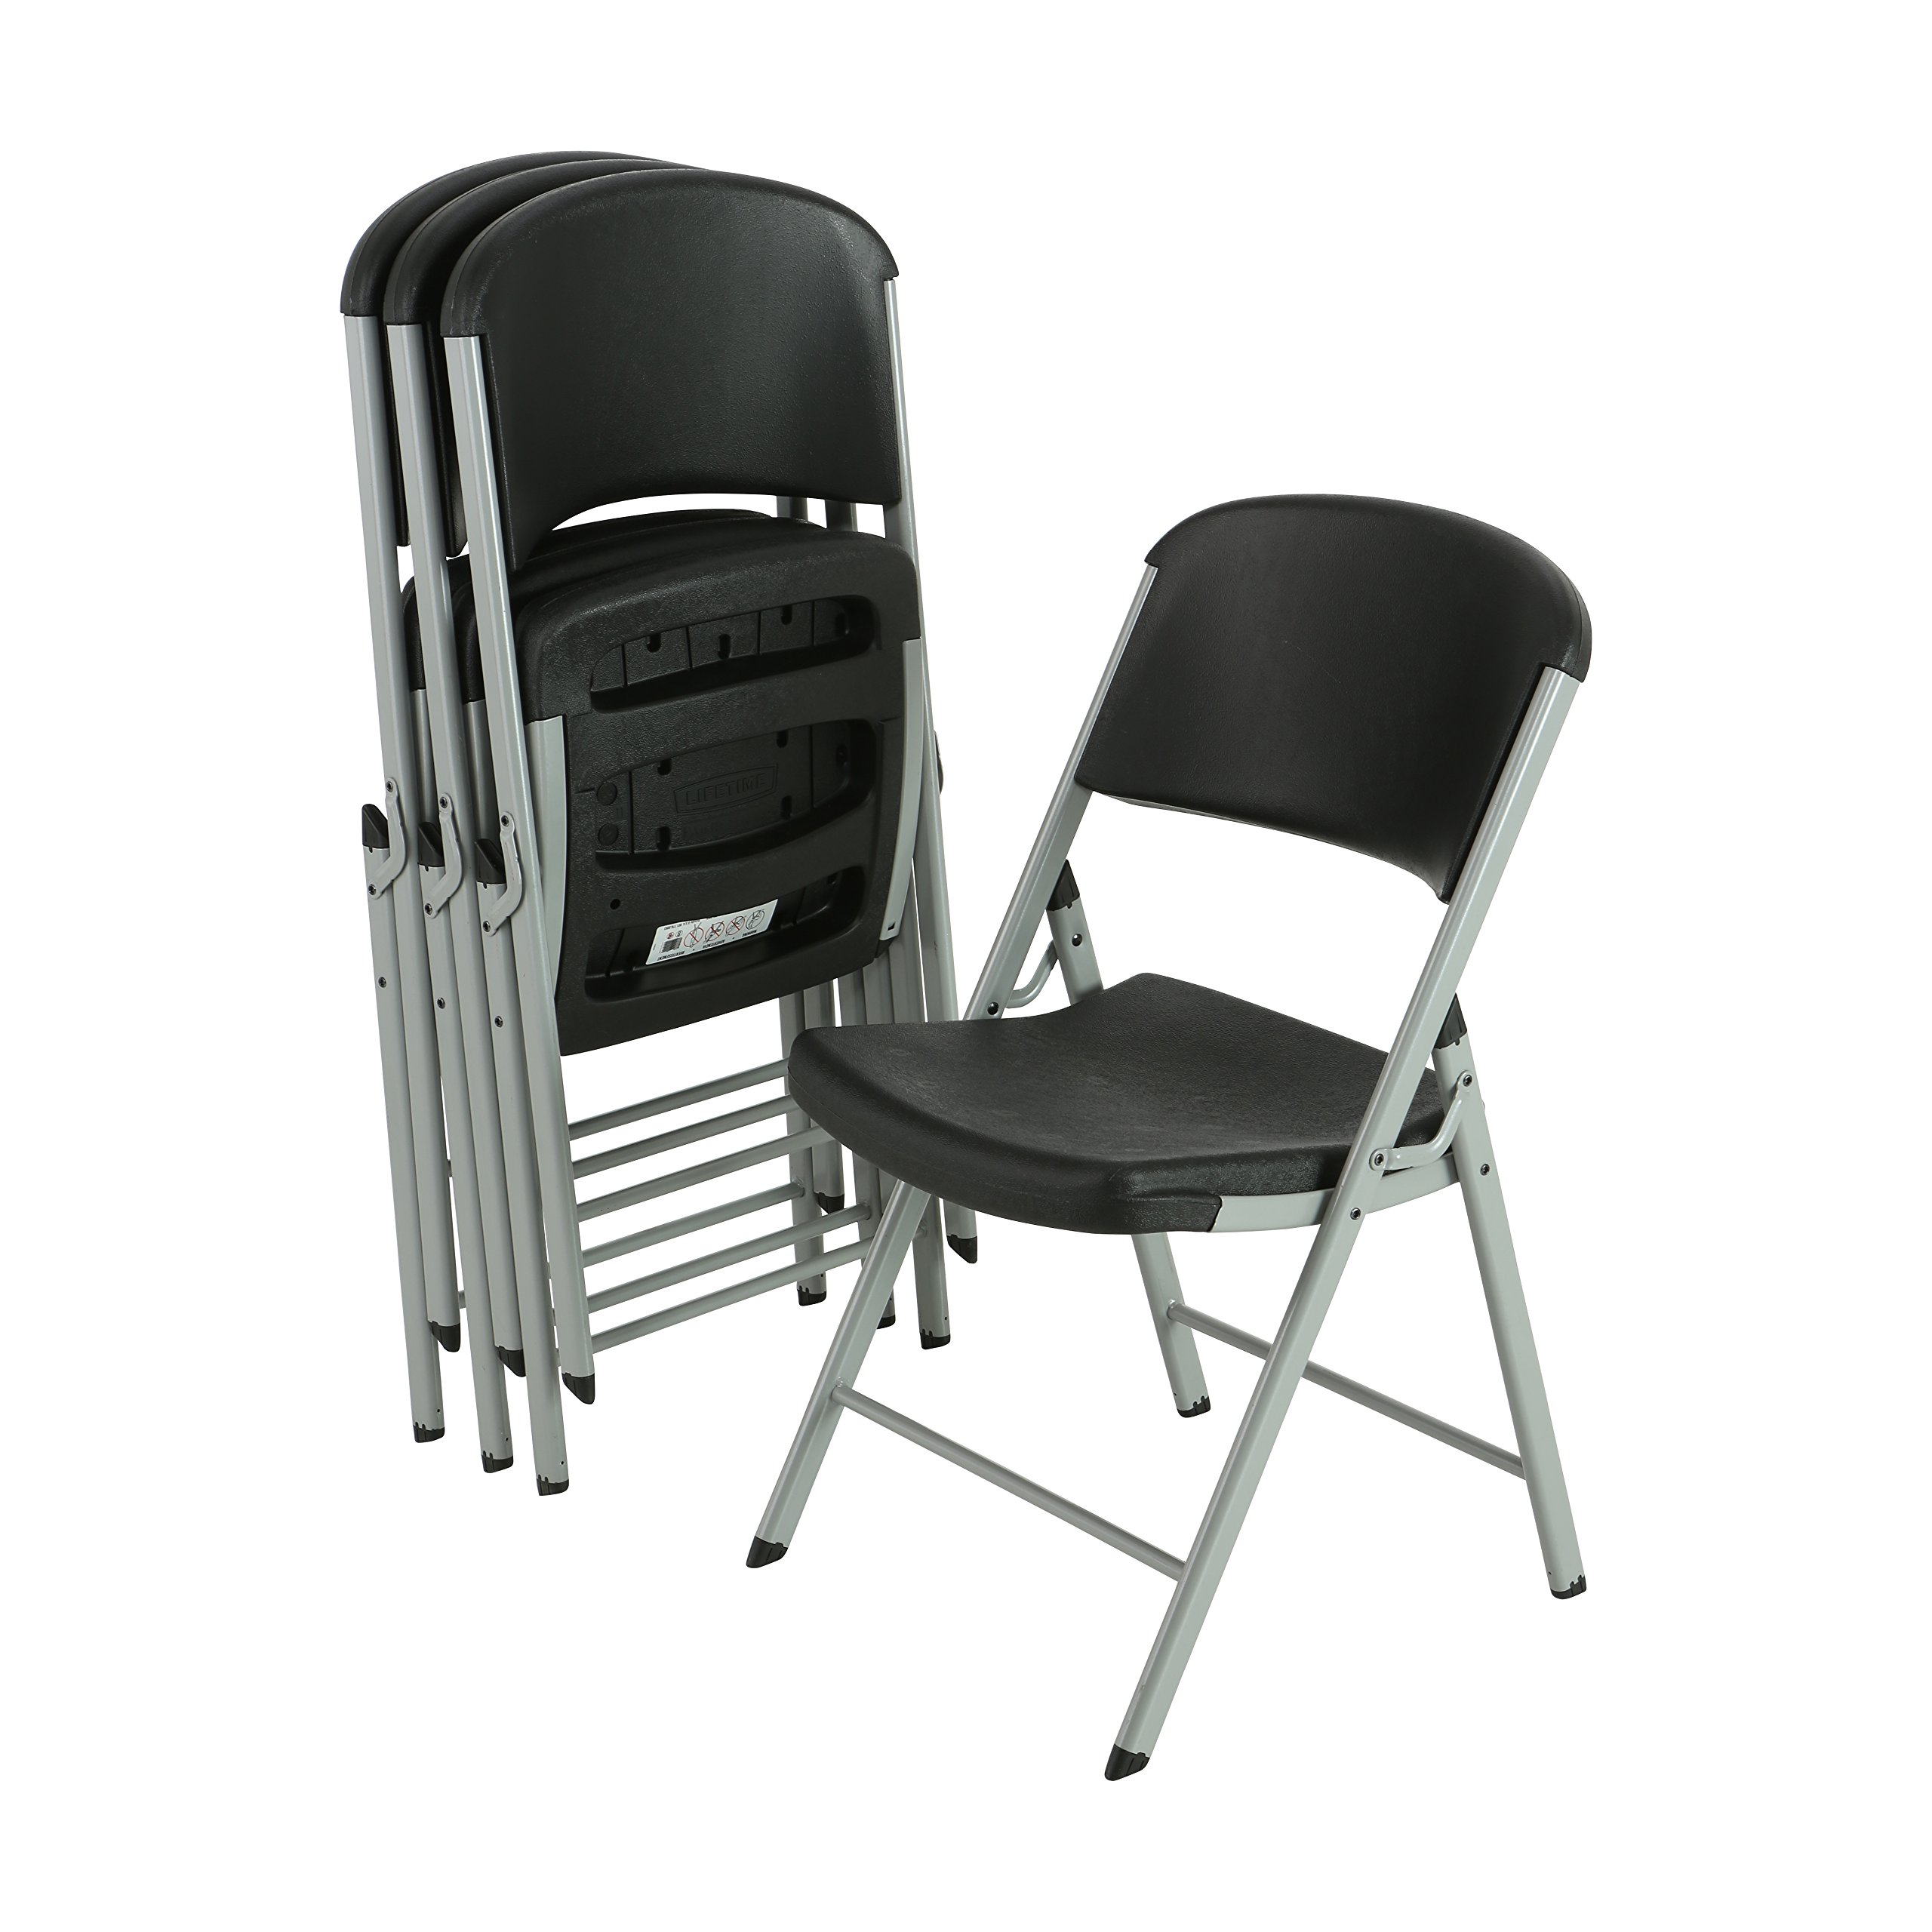 Lifetime 80407 Classic Commercial Folding Chair (black) 4-pk